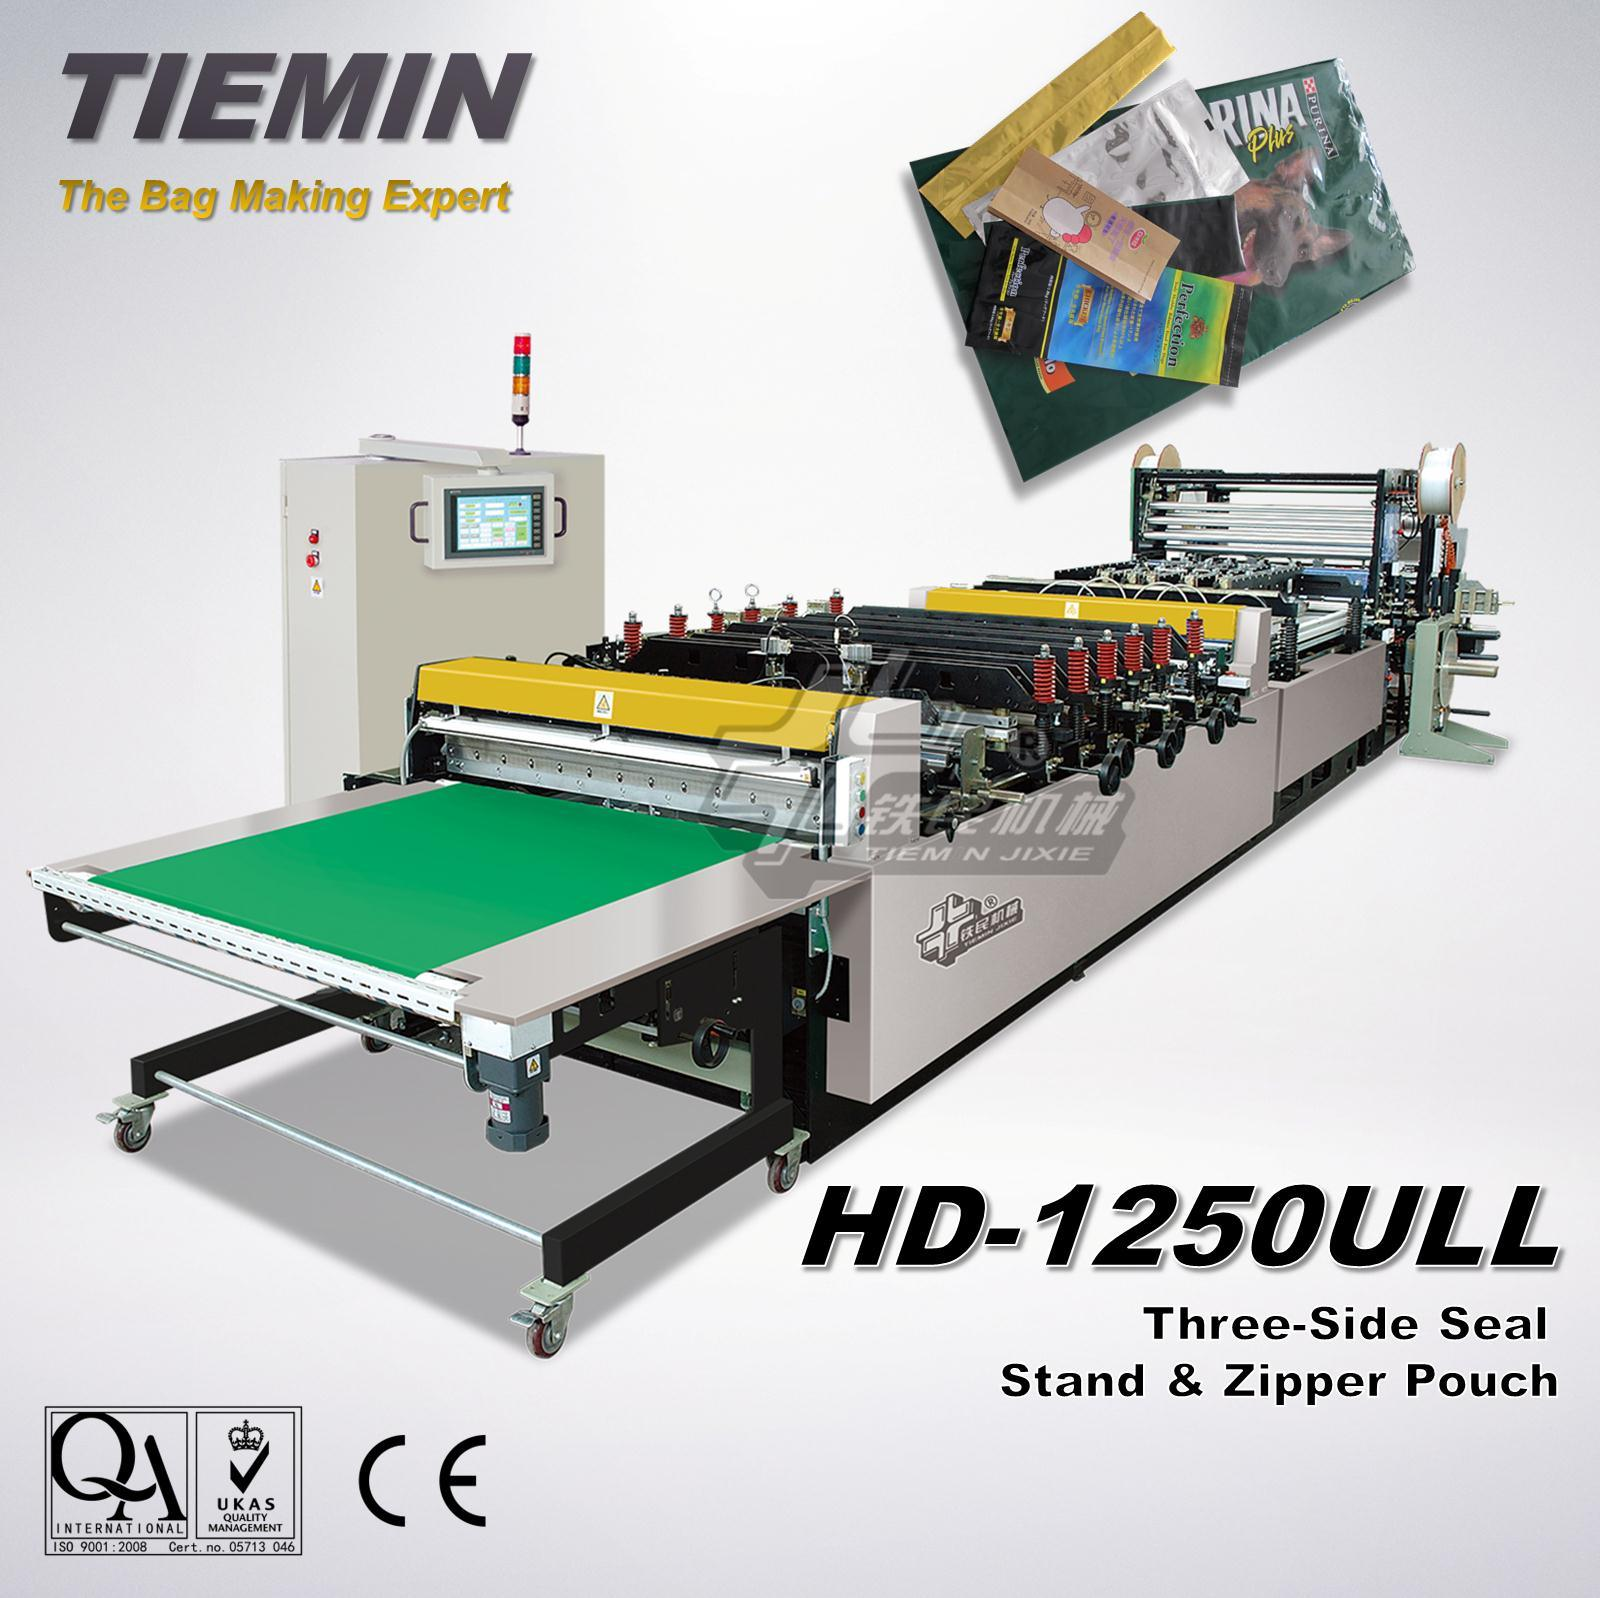 Tiemin High Quality High Speed Automatic Three-Side Bag-Making Machine (Three-side-seal, Stand pouch & zipper bag) HD-1250ull